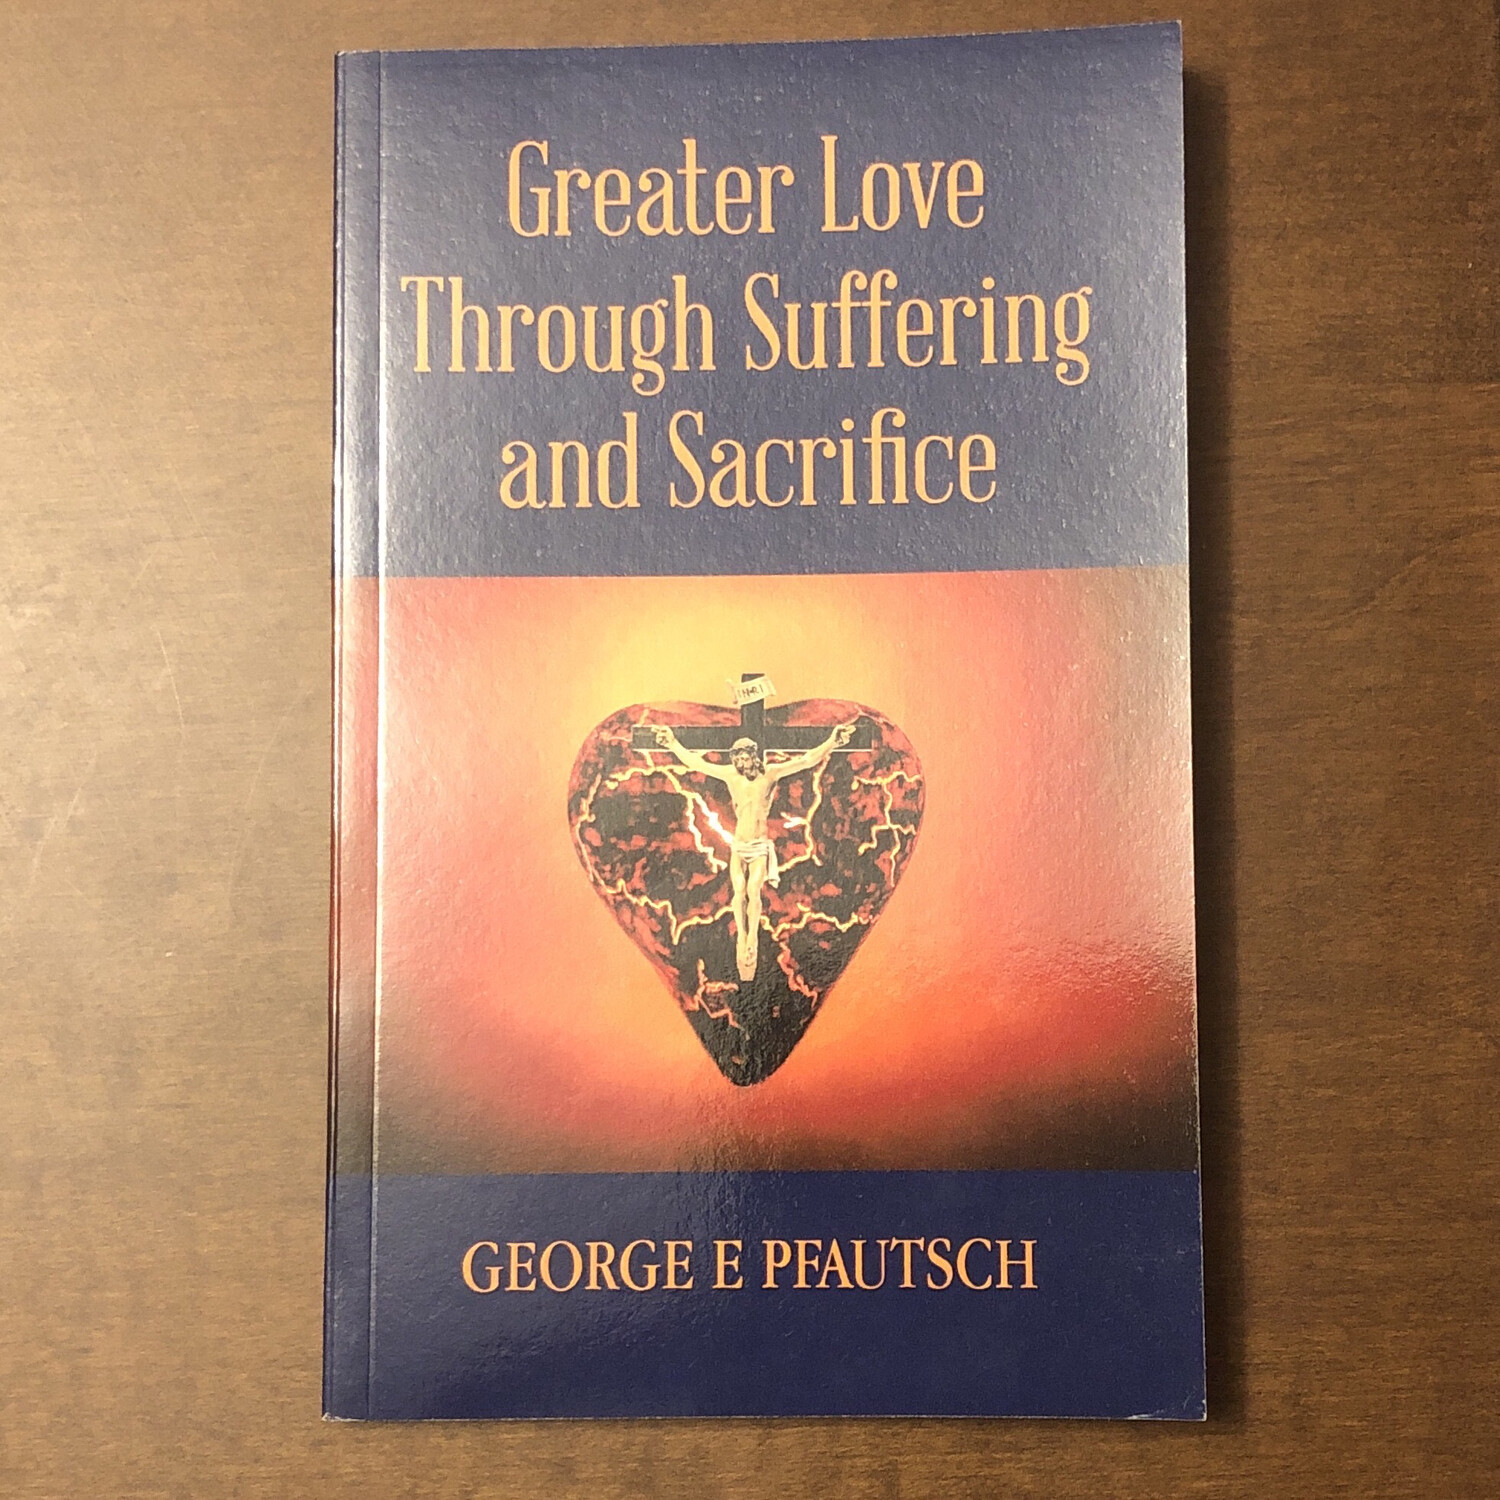 Greater Love Through Suffering and Sacrifice by George E Pfautsch